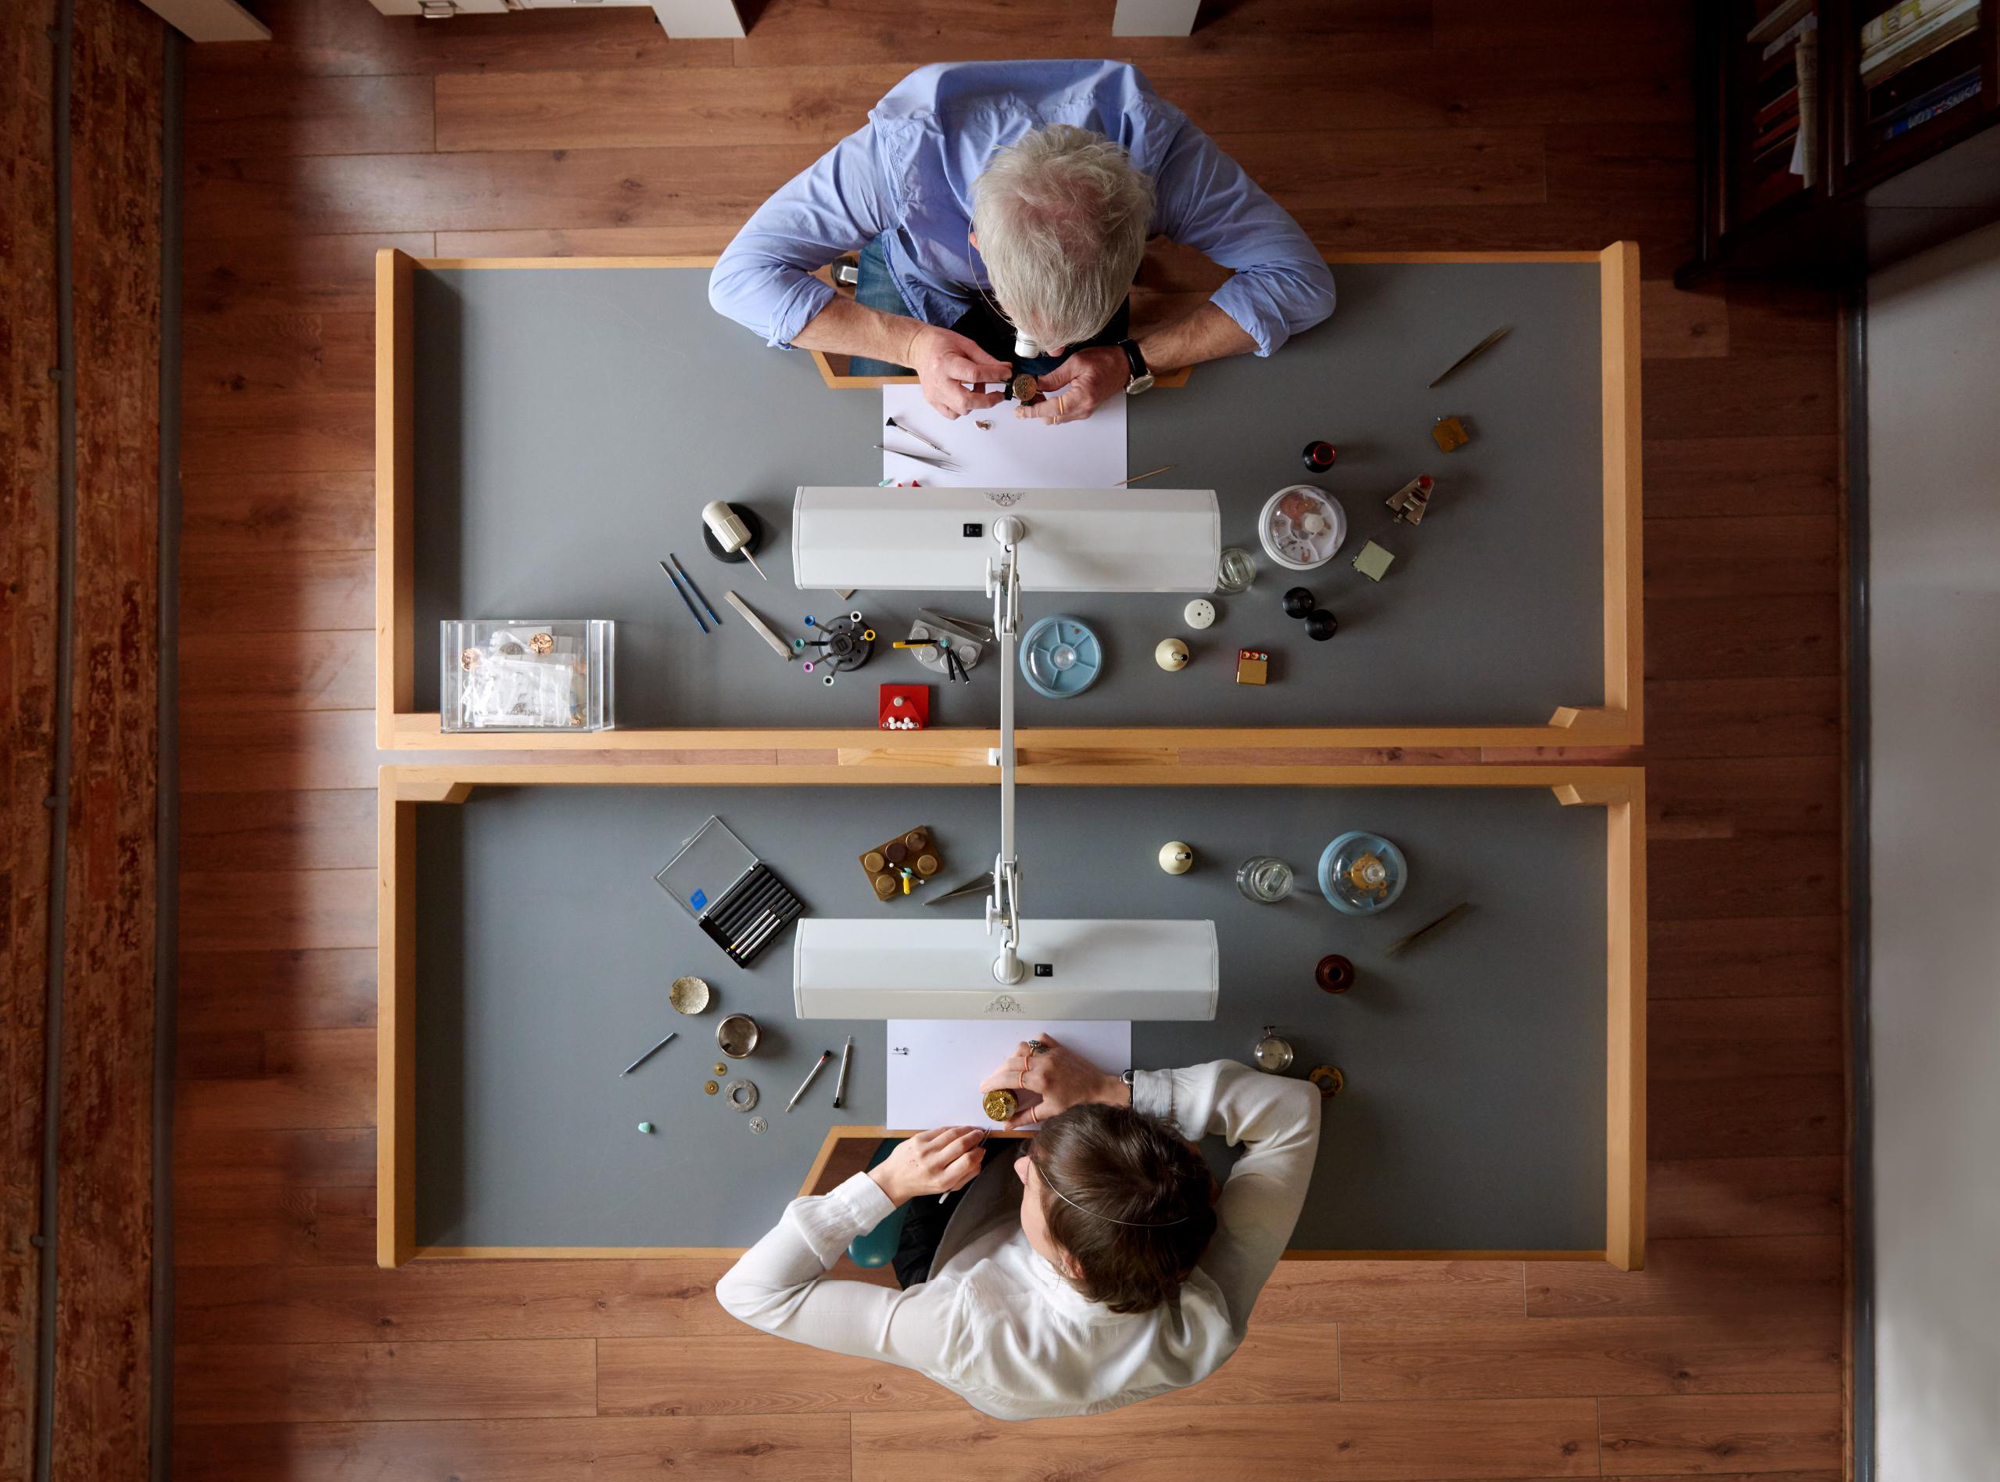 Watchmakers Craig and Rebecca Struthers, photography: Andy Pilsbury